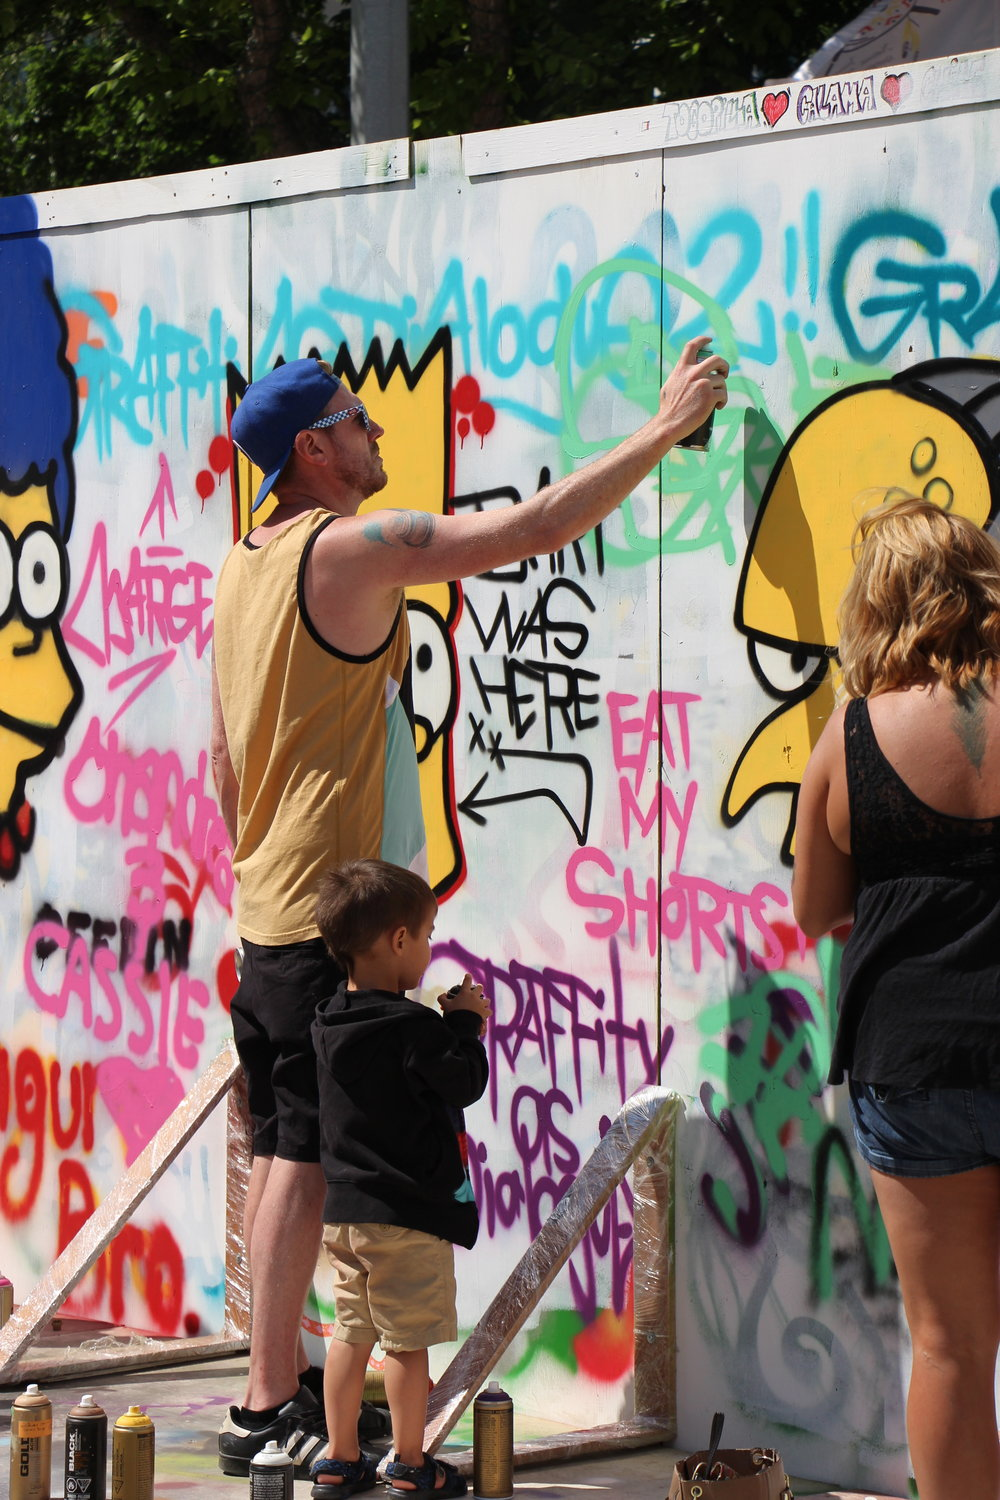 Reframe Graffiti is Dialogue2 - iHuman Youth Society_8788.JPG